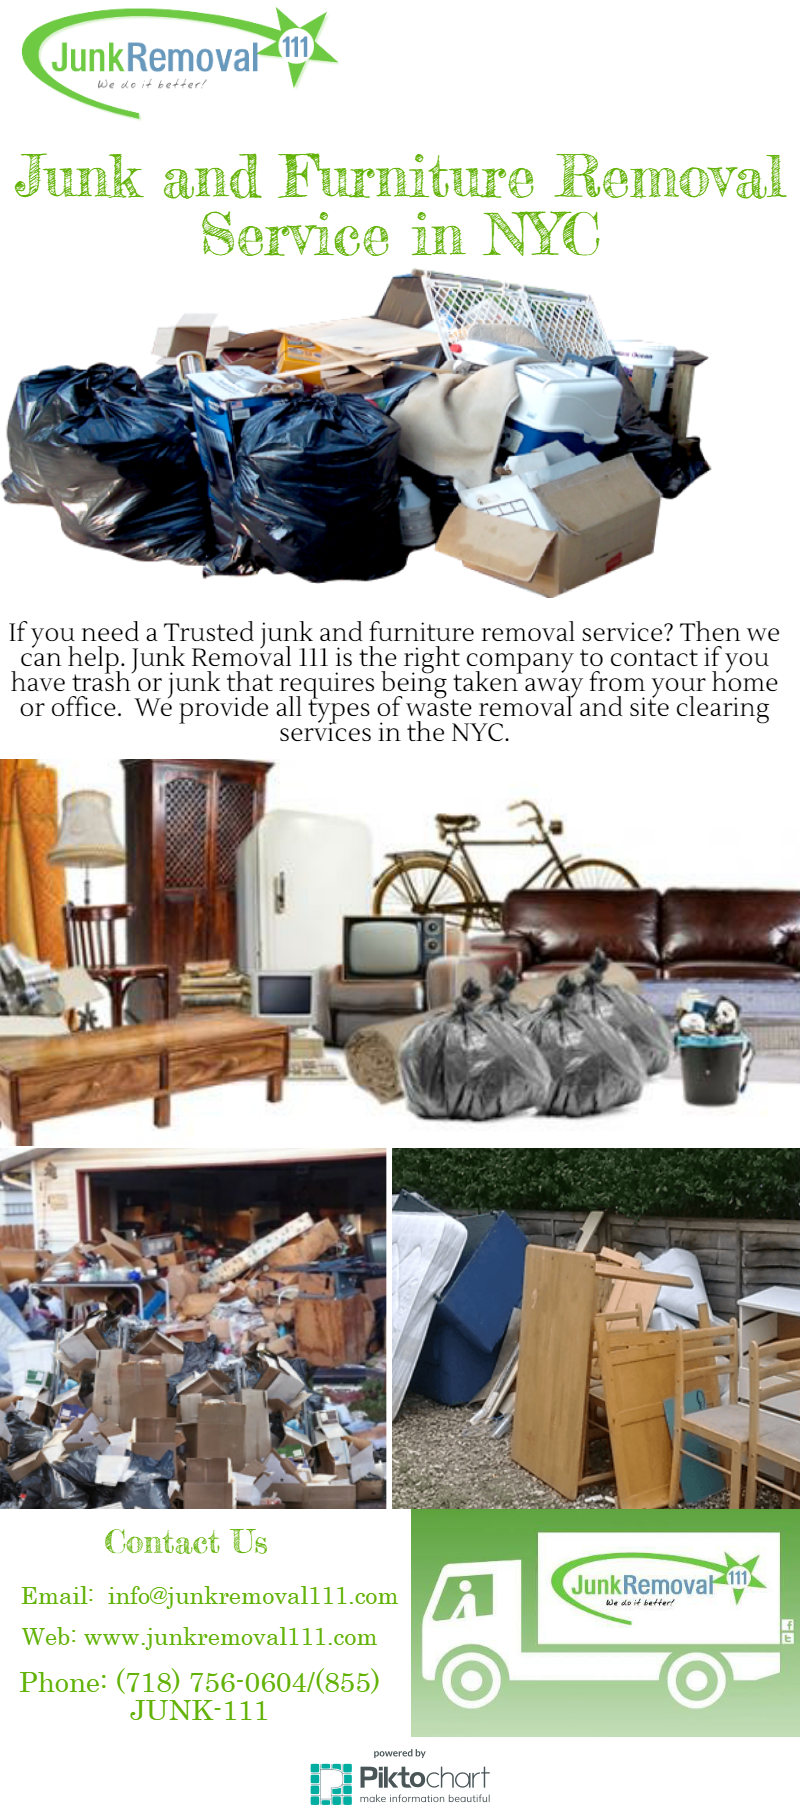 If you need a Trusted junk and furniture removal service? Then we ...